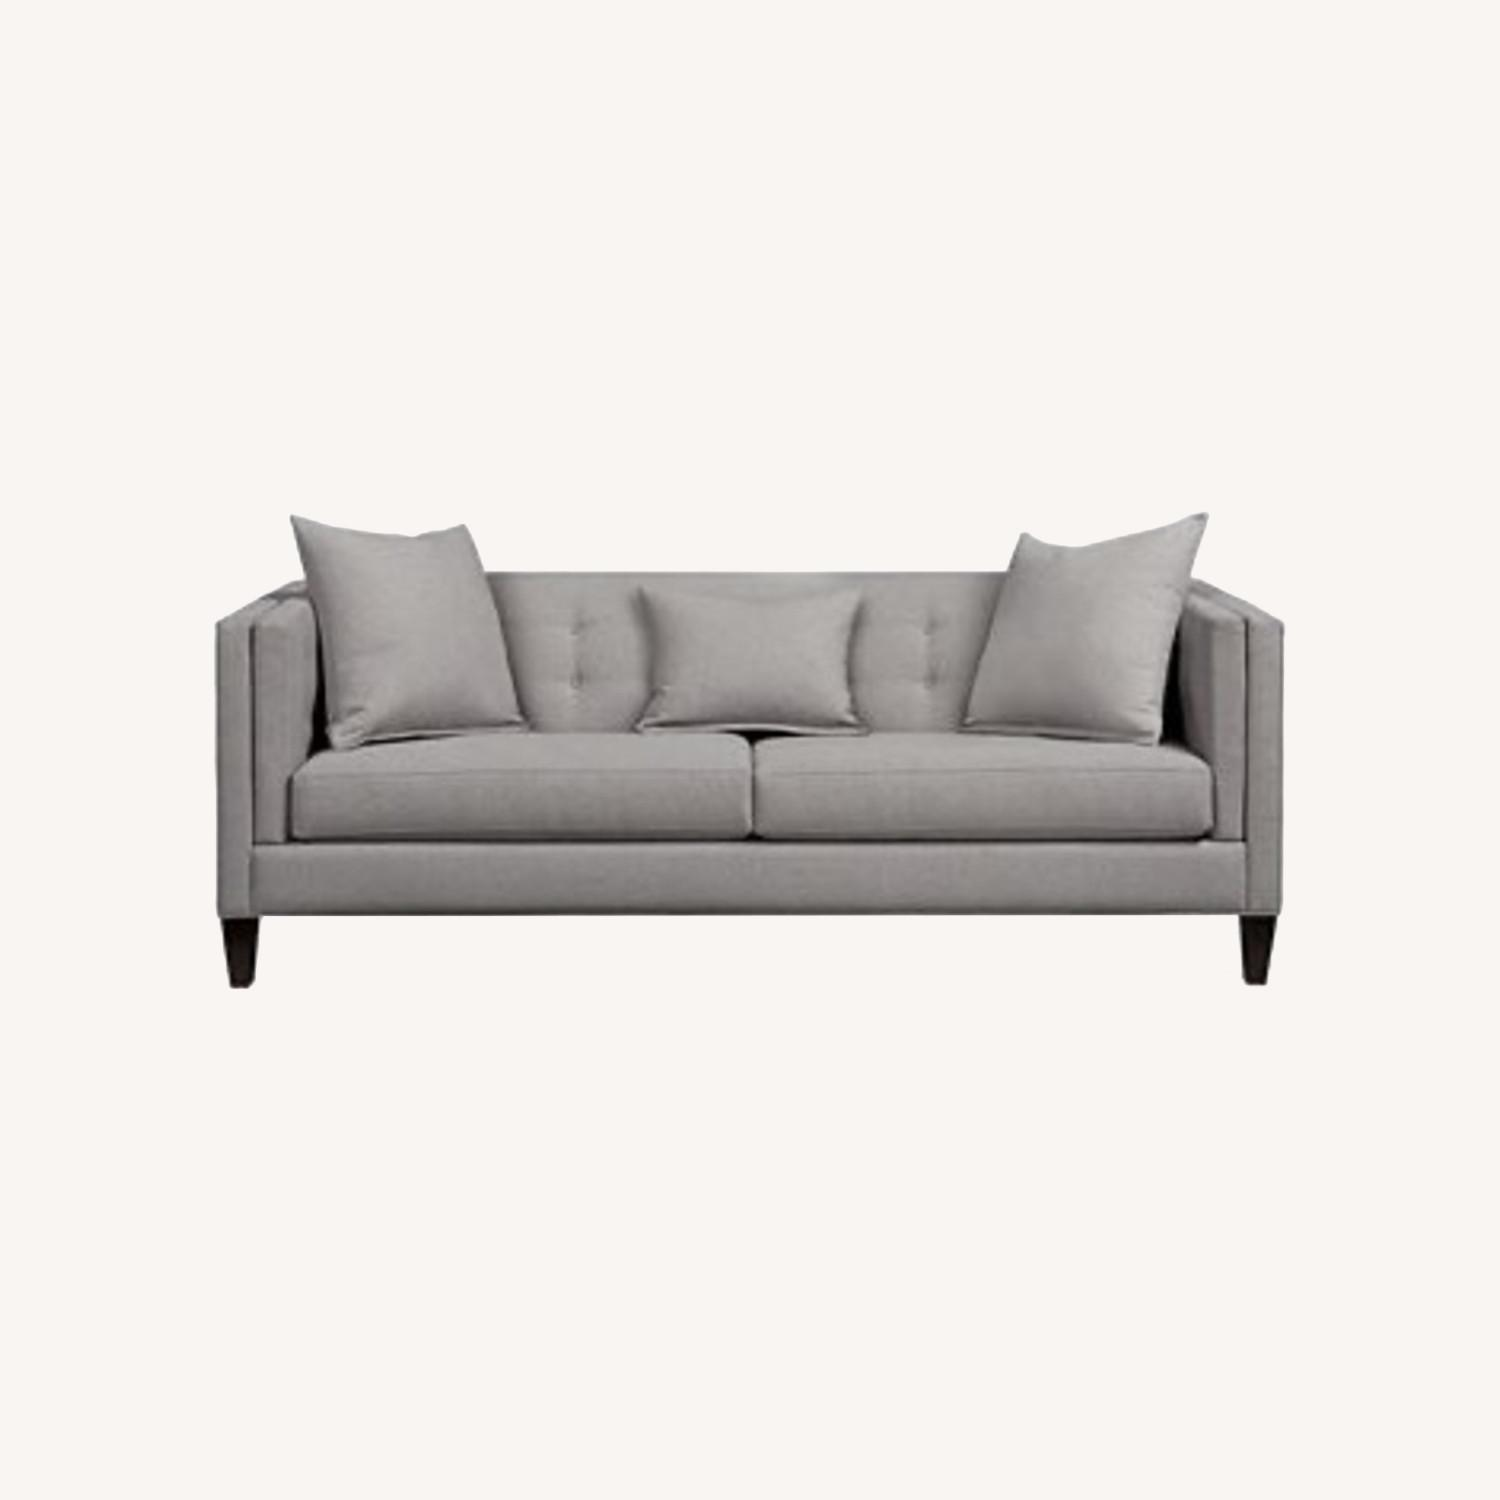 Macy's Braylei 88inch Track Arm Sofa Heather Gray - image-0